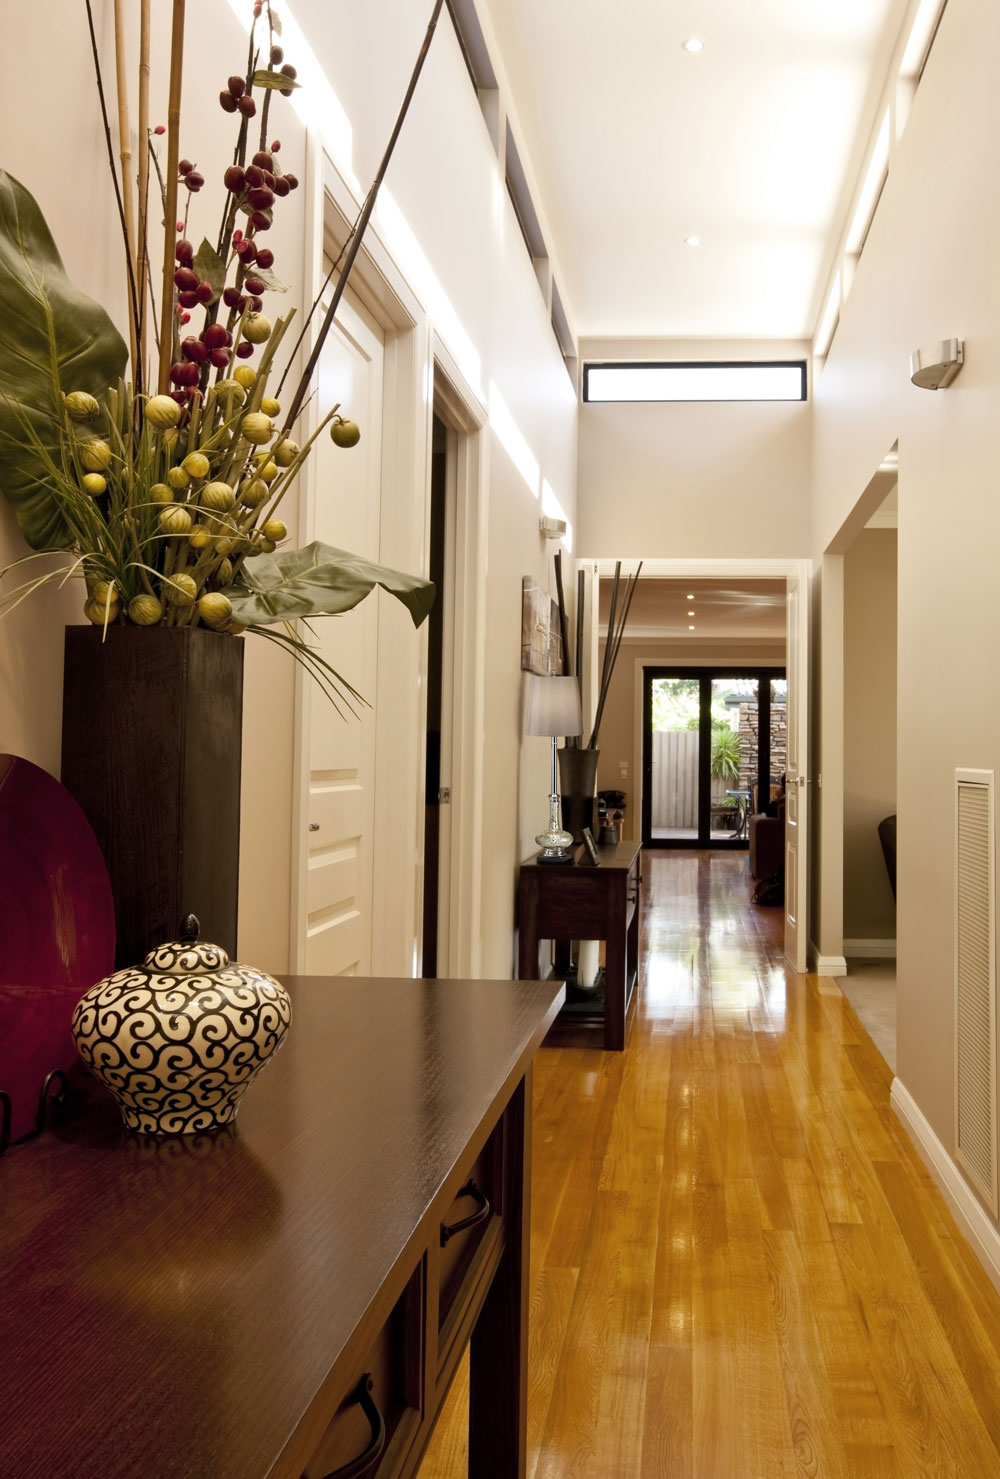 Kitchen And Hallway Design Ideas For Apartments